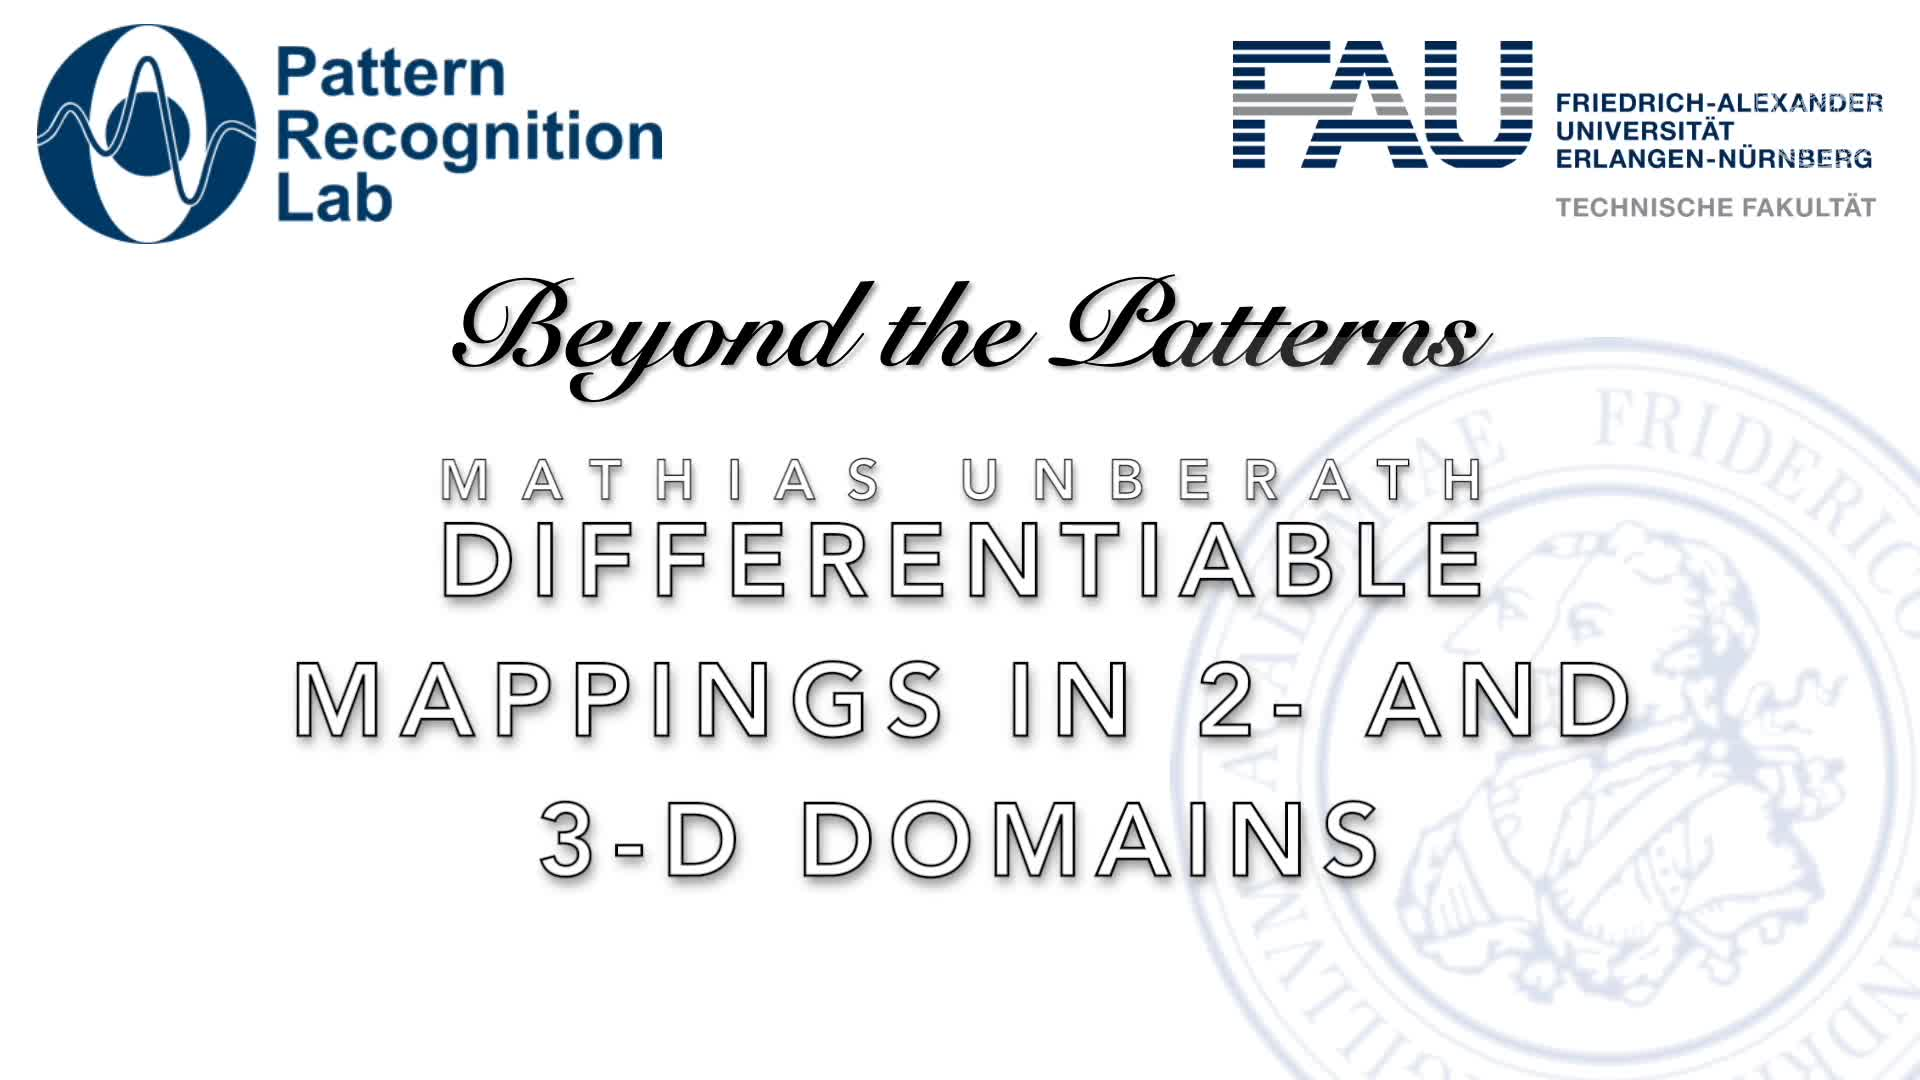 Beyond the Patterns - Mathias Unberath - Bridging Domains in Medical Imaging — Differentiable Mappings Between 2- and 3-Dimensional Data Domains preview image